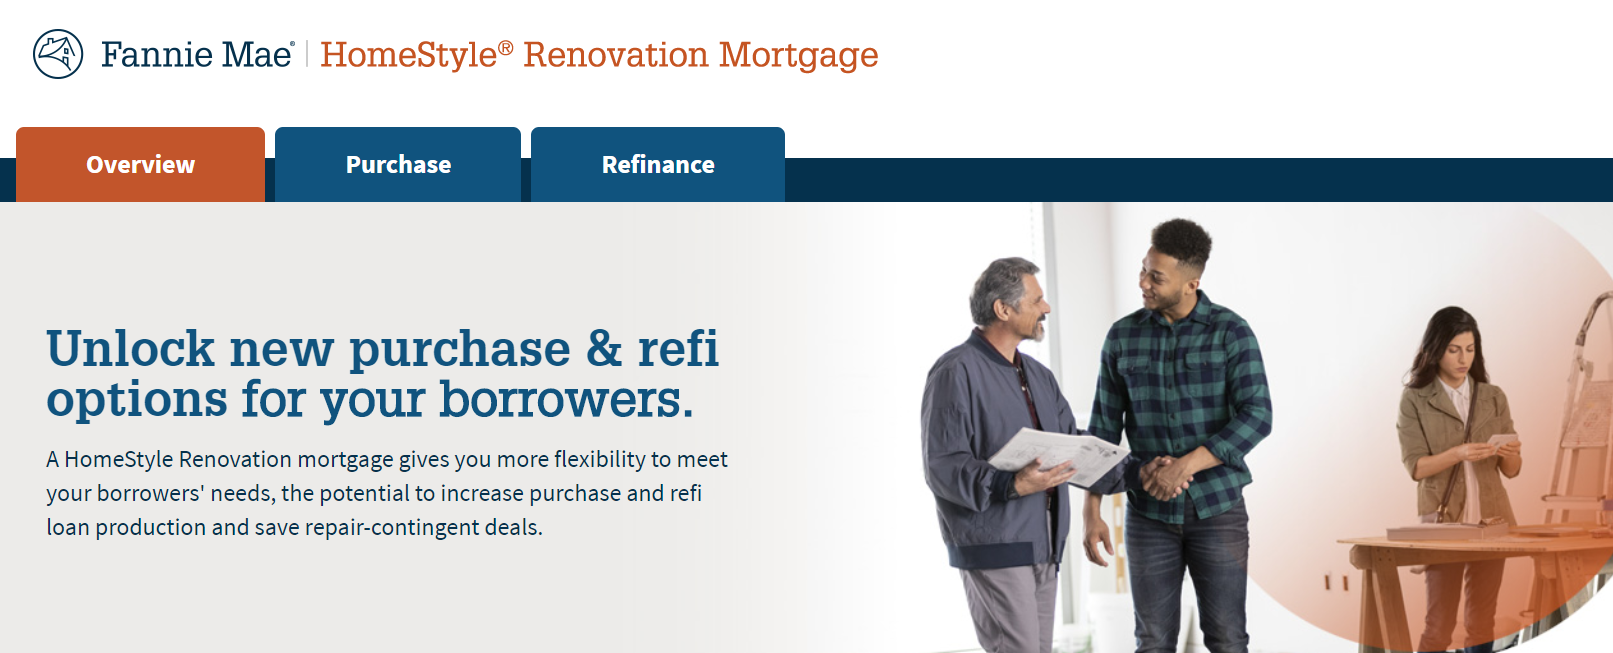 Fannie Mae Homestyle Renovation energy efficient mortgage loan